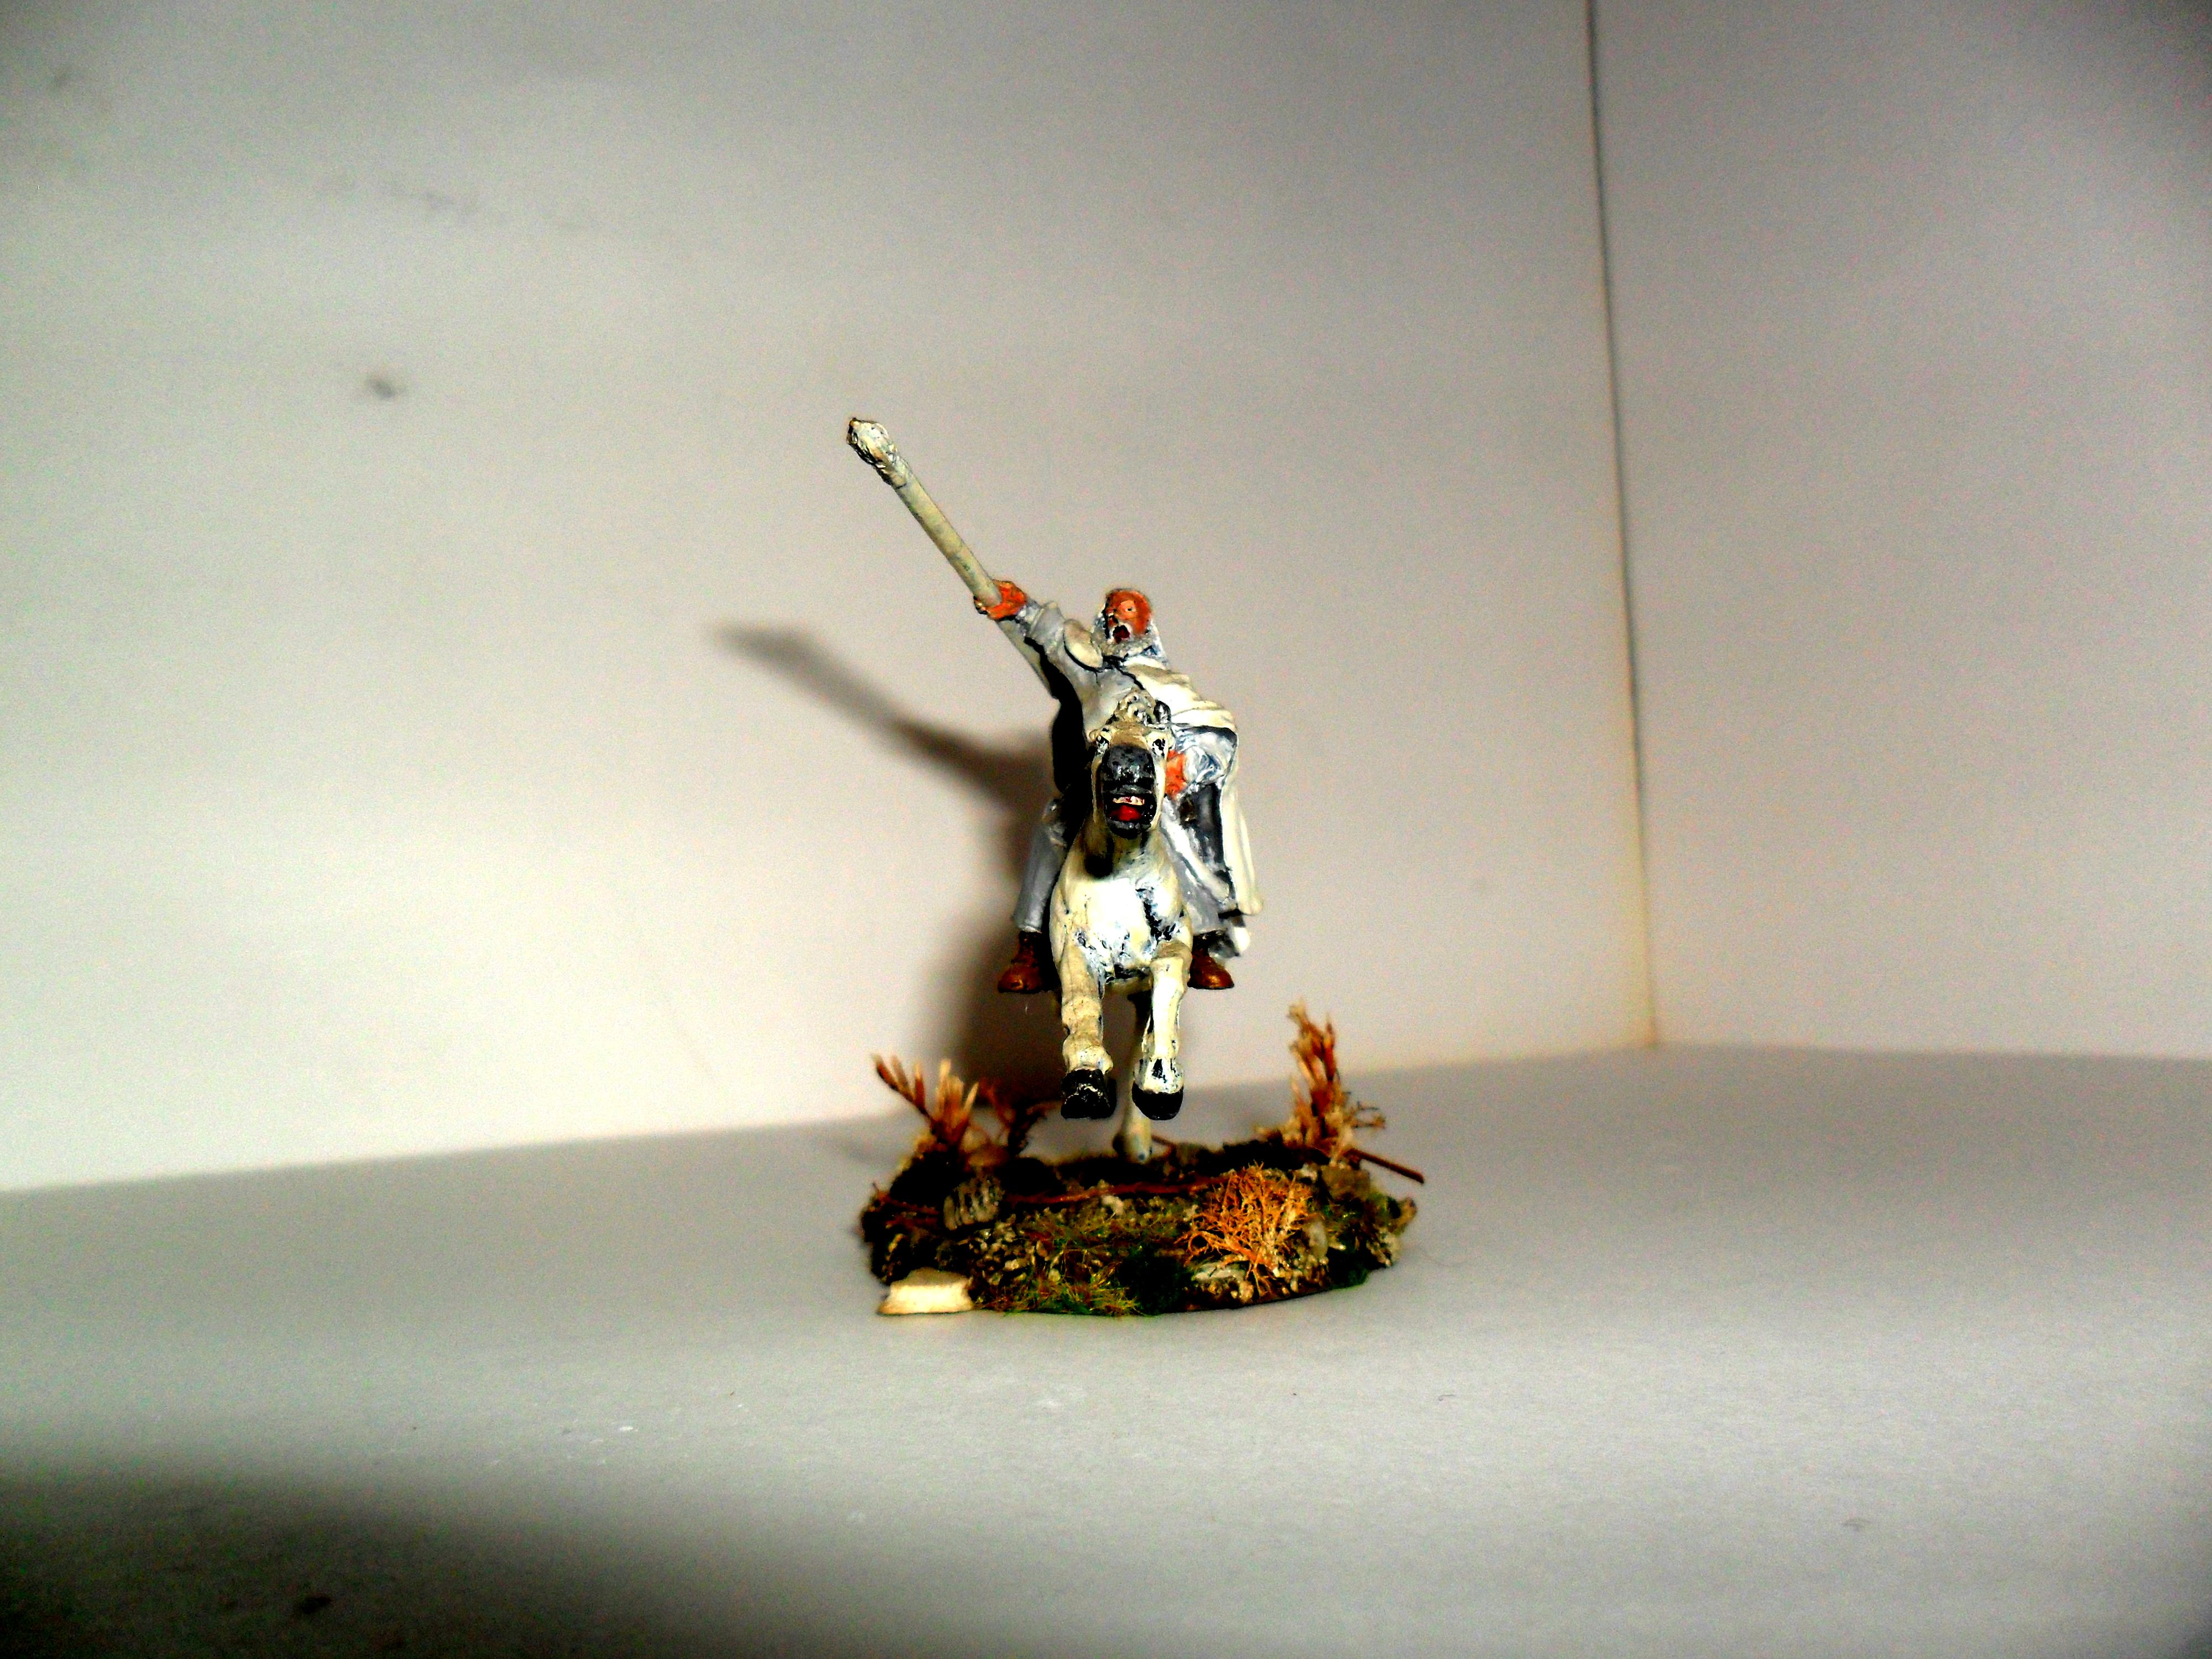 Warhammer Fantasy, The white wizard rides out